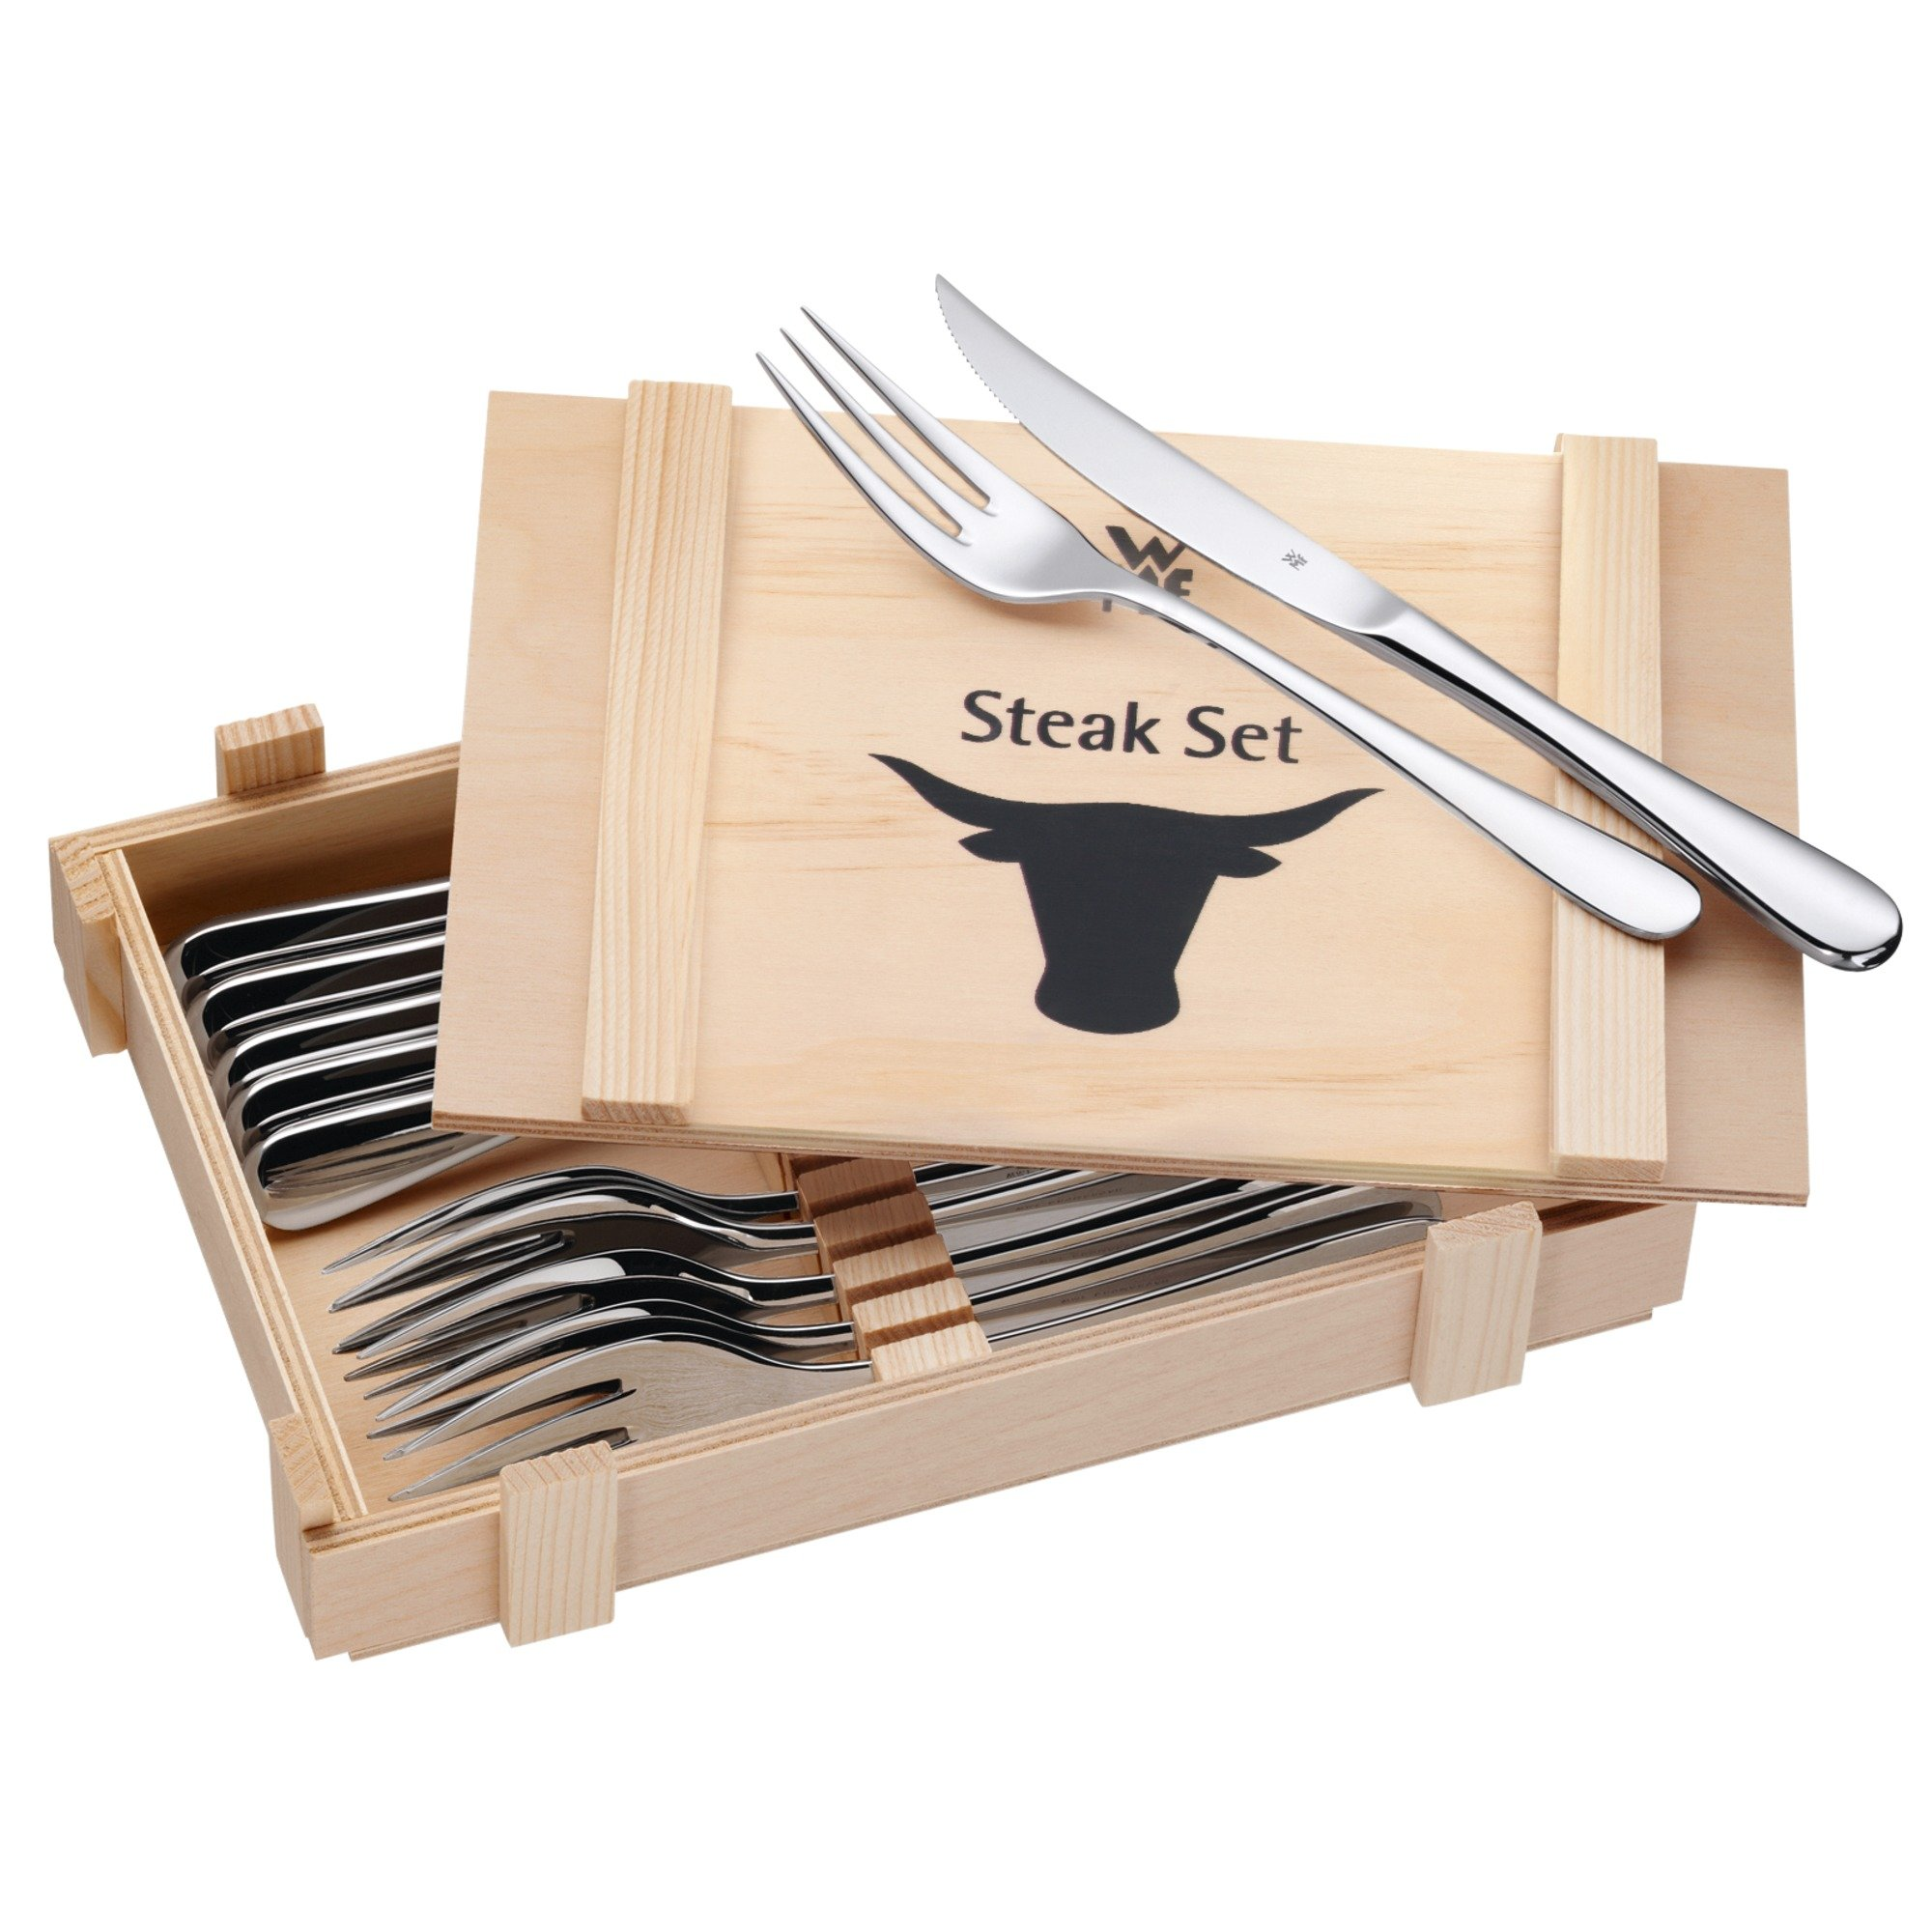 WMF Steak Cutlery 12 pieces (6 personas)